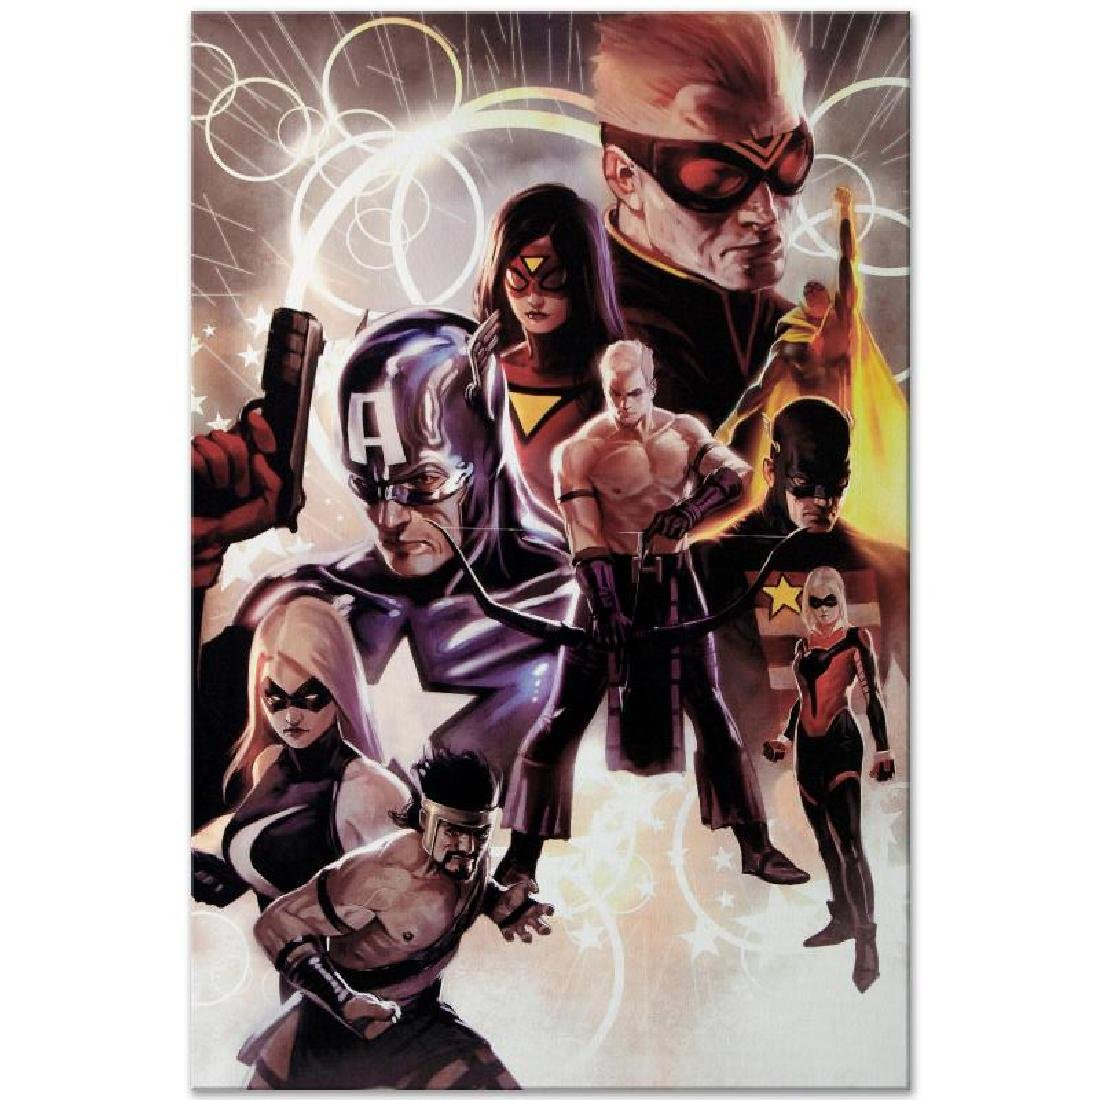 The Mighty Avengers #30 by Marvel Comics - 3